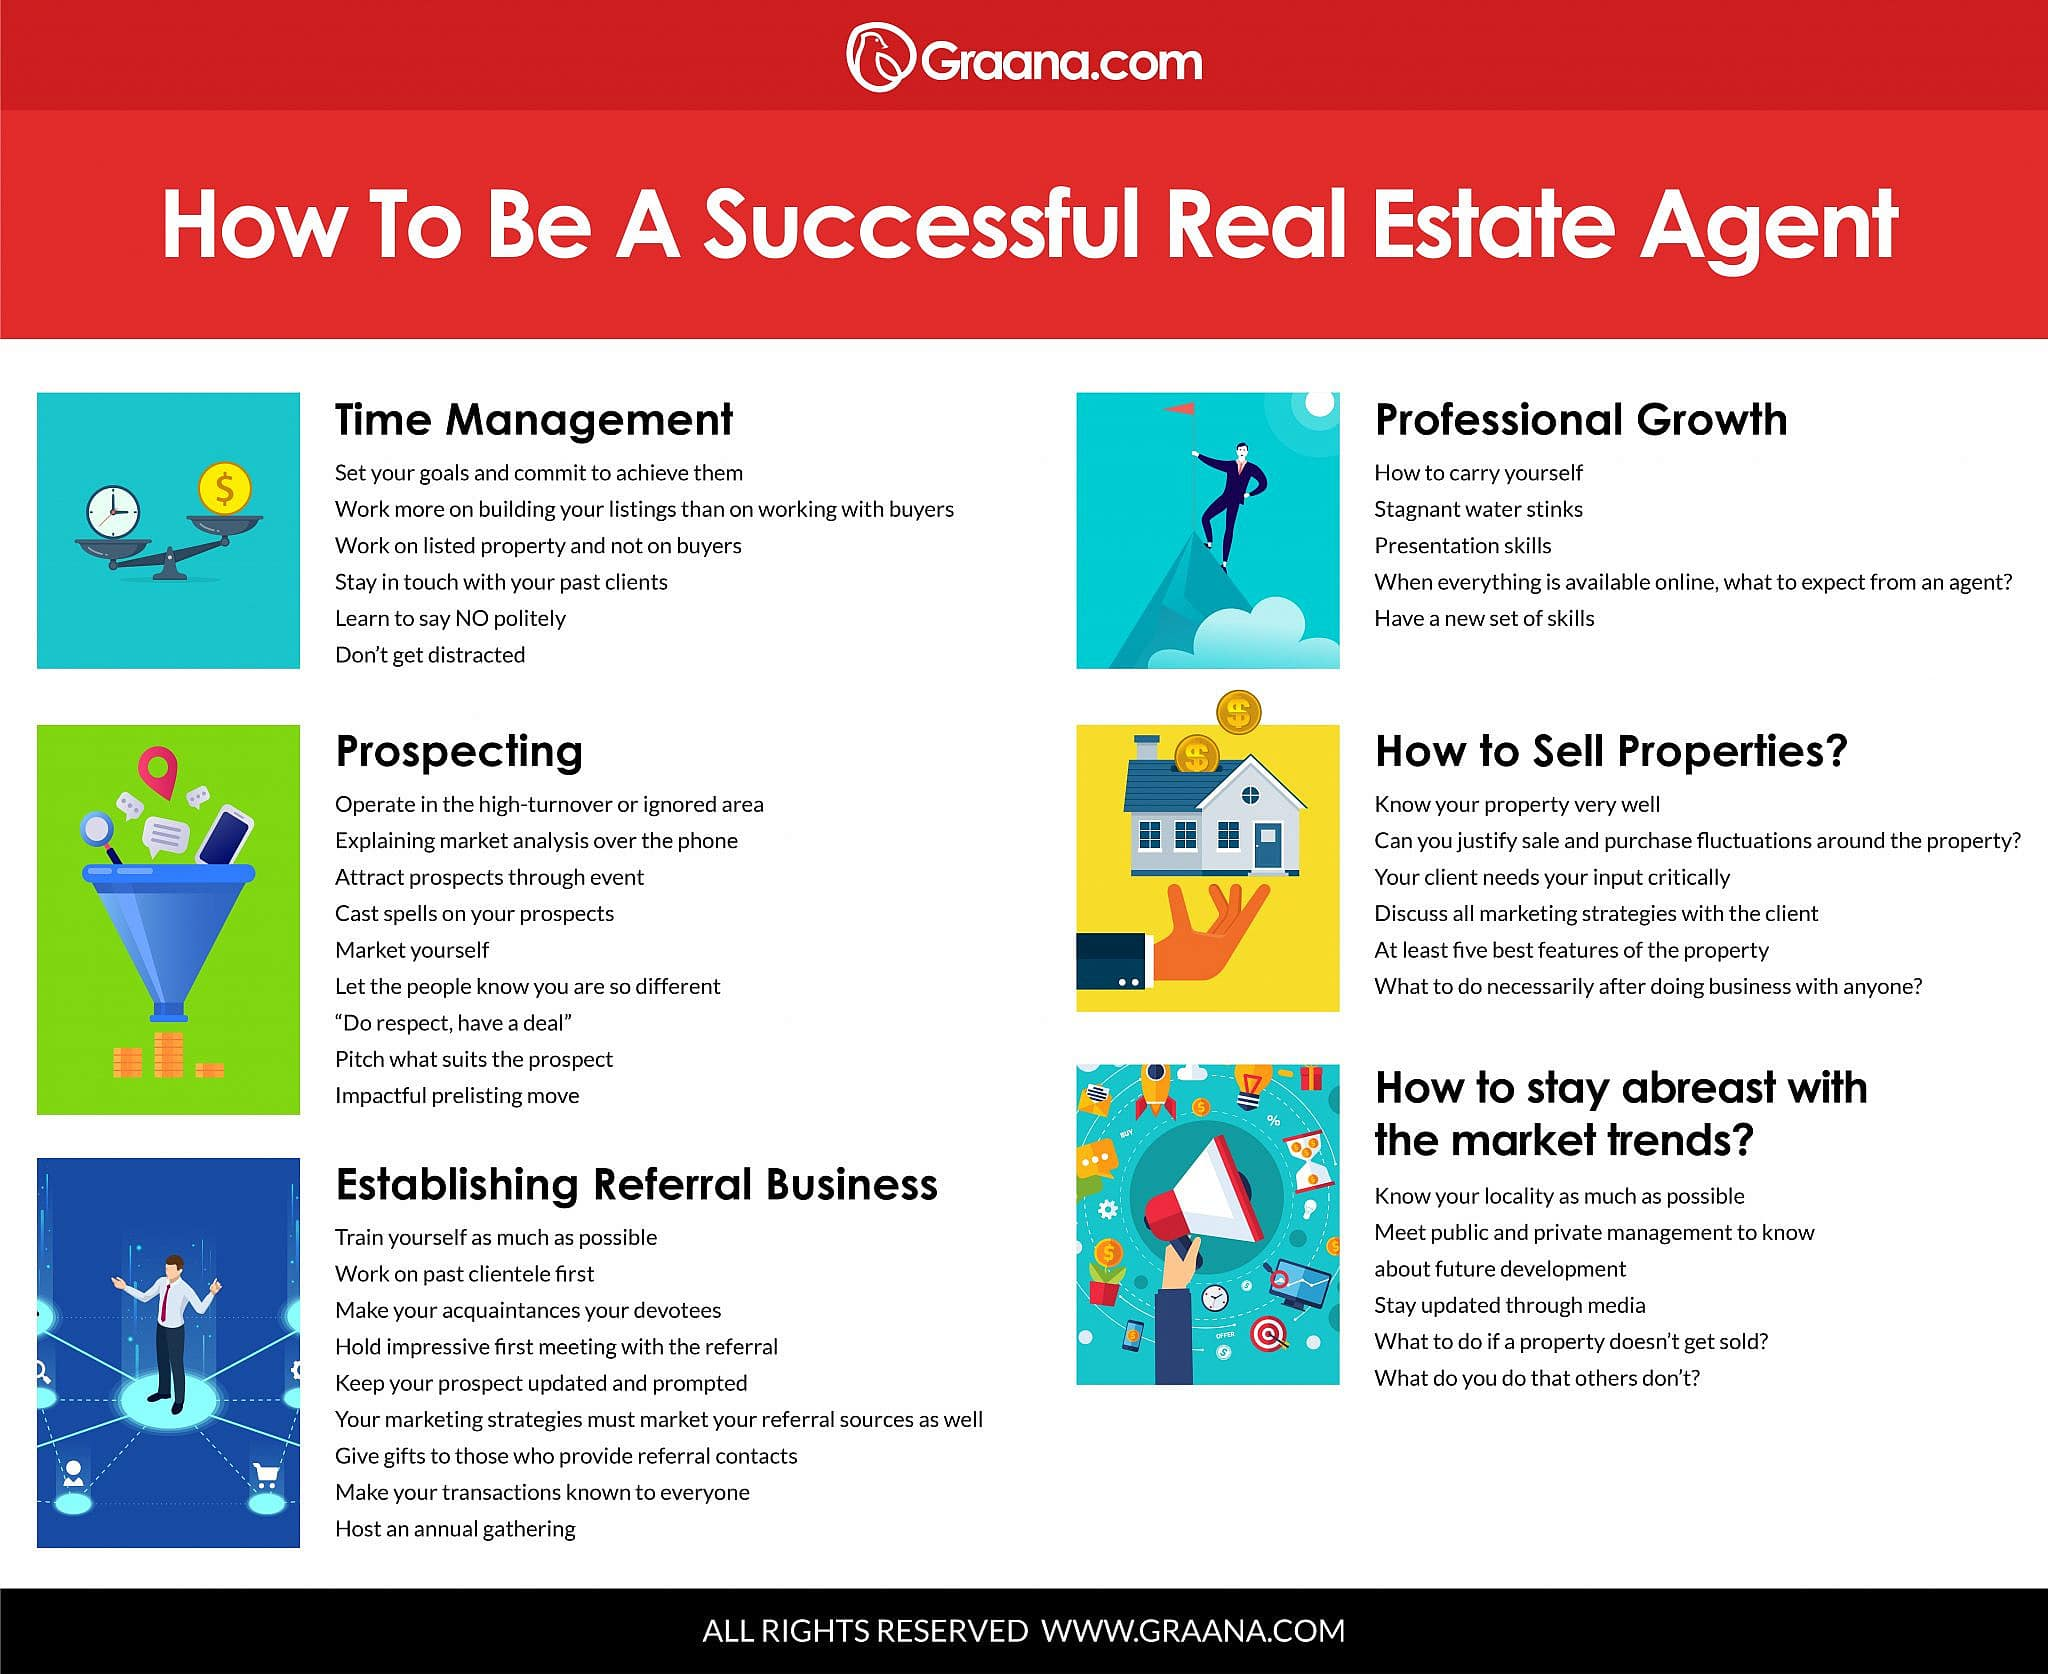 Info-graph about how to be successful real estate agent